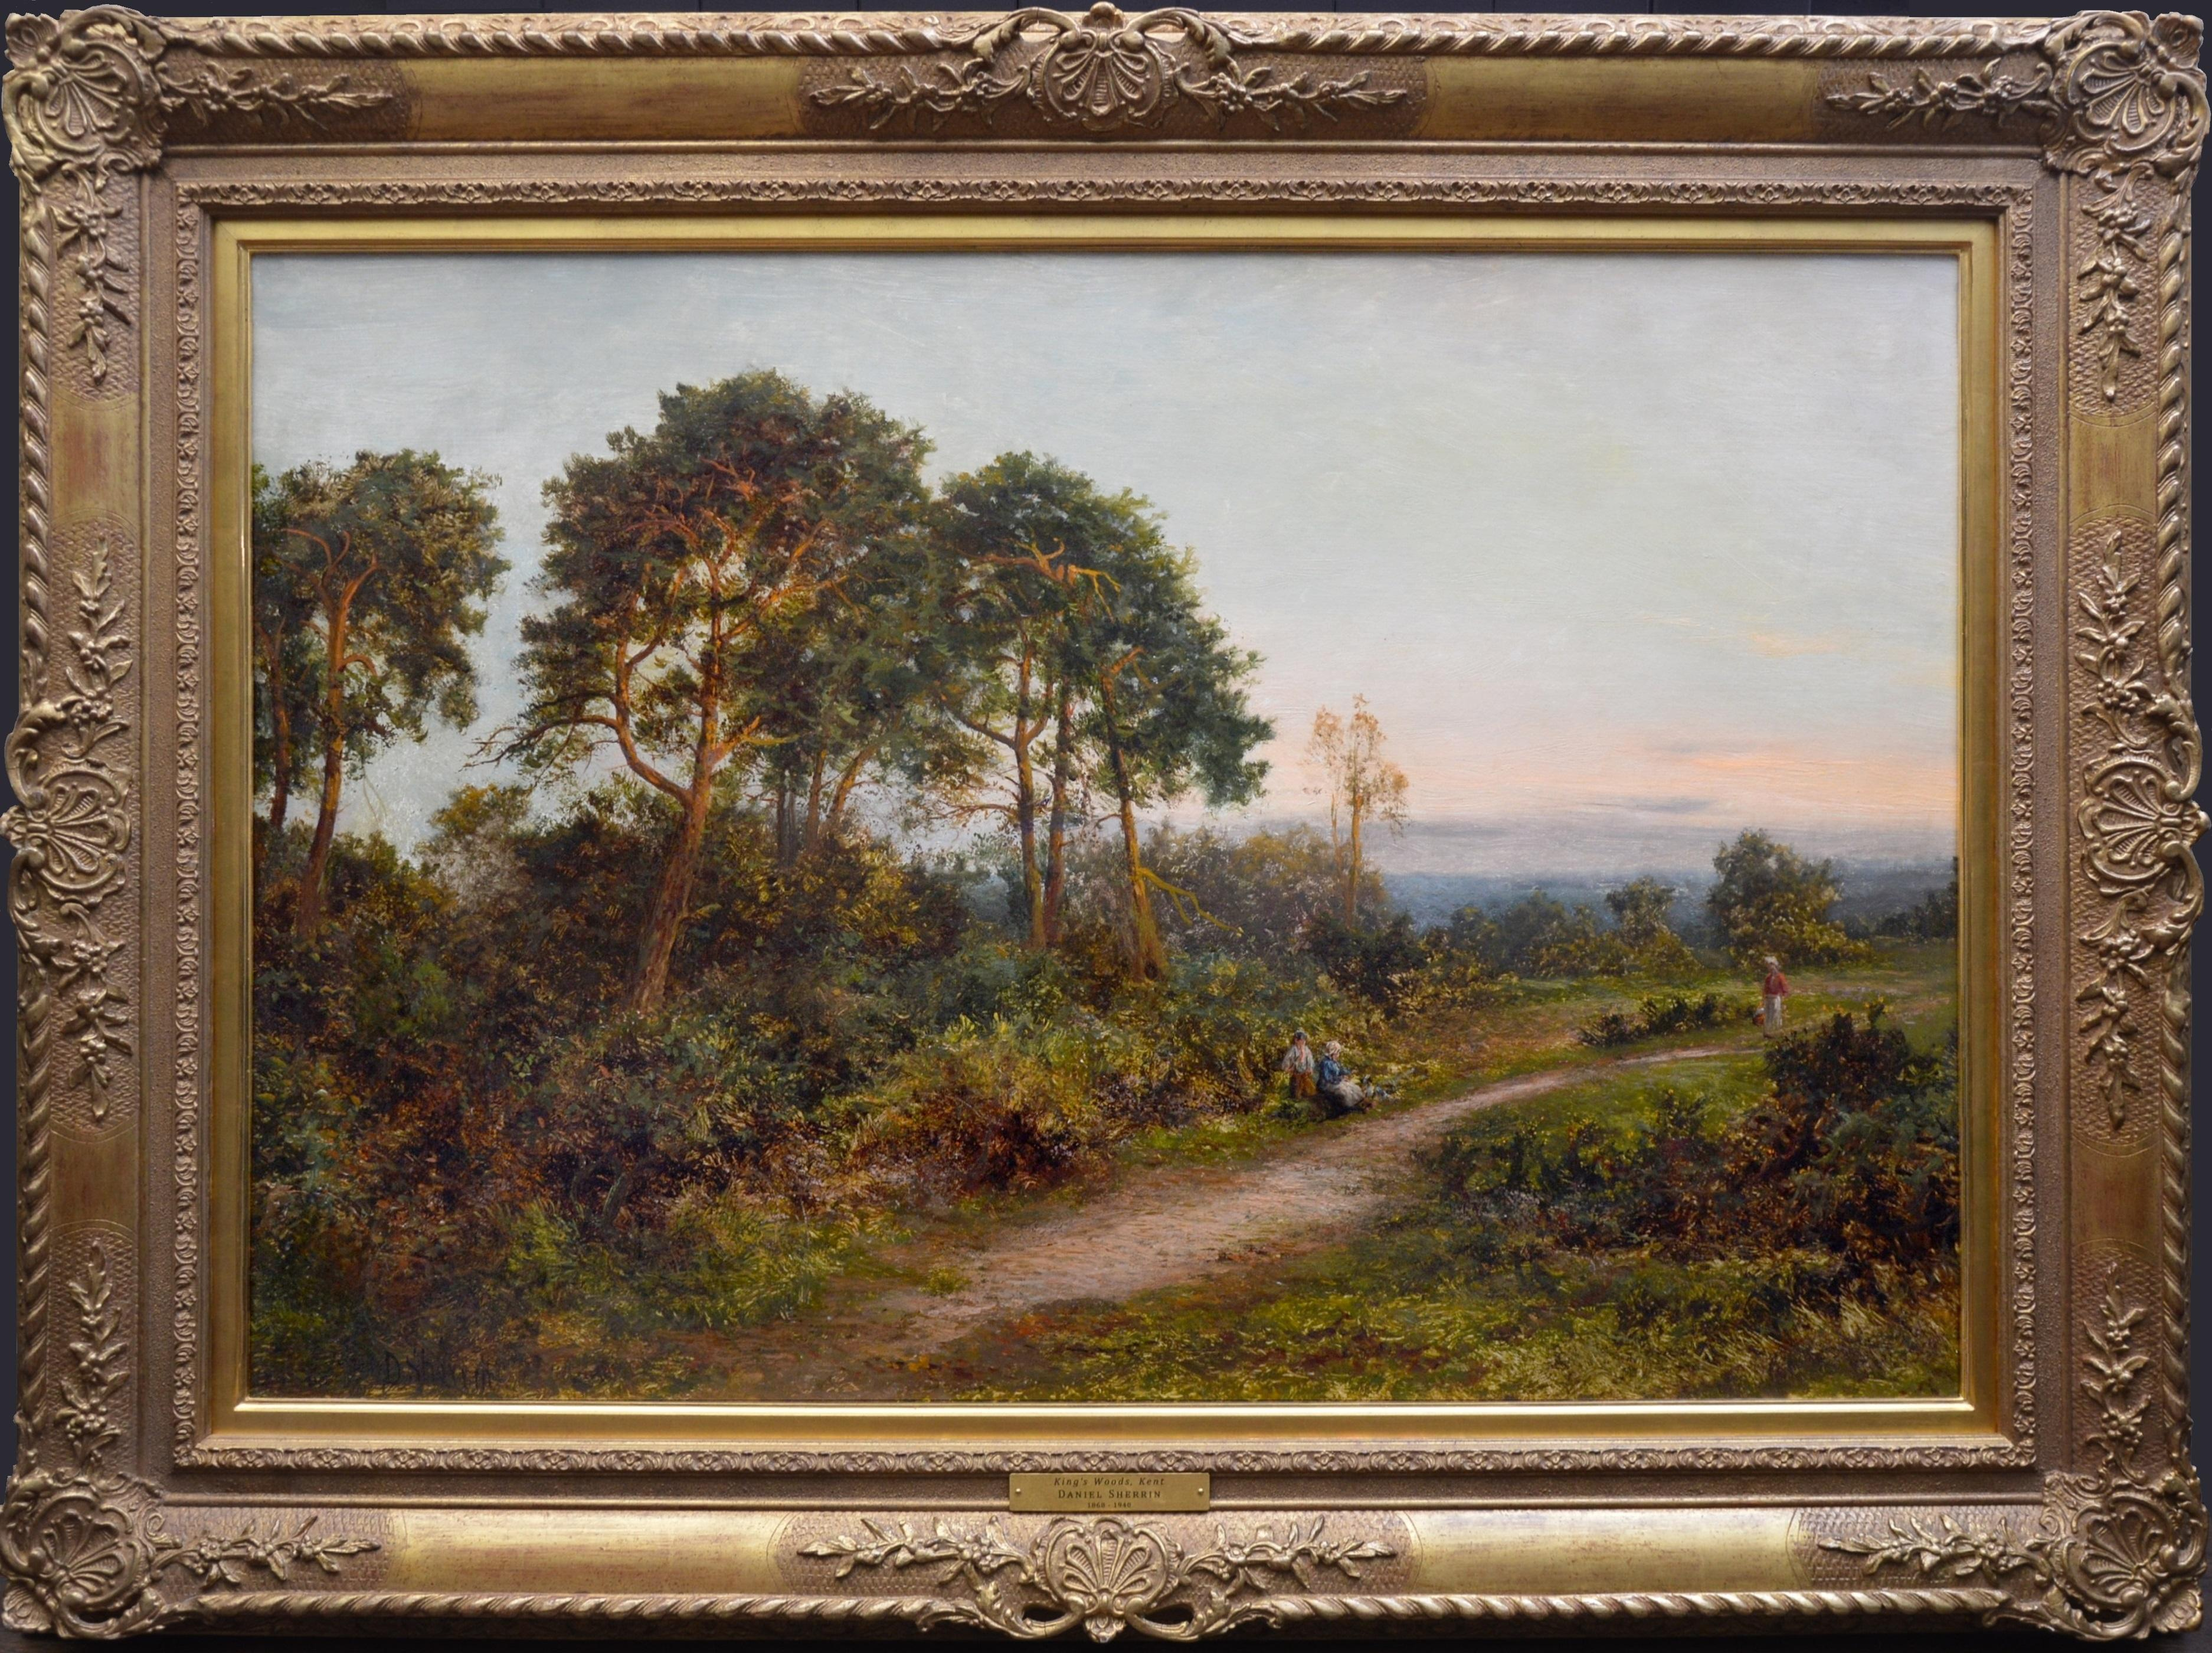 King's Wood, Kent - Large 19th Century English Landscape Oil Painting